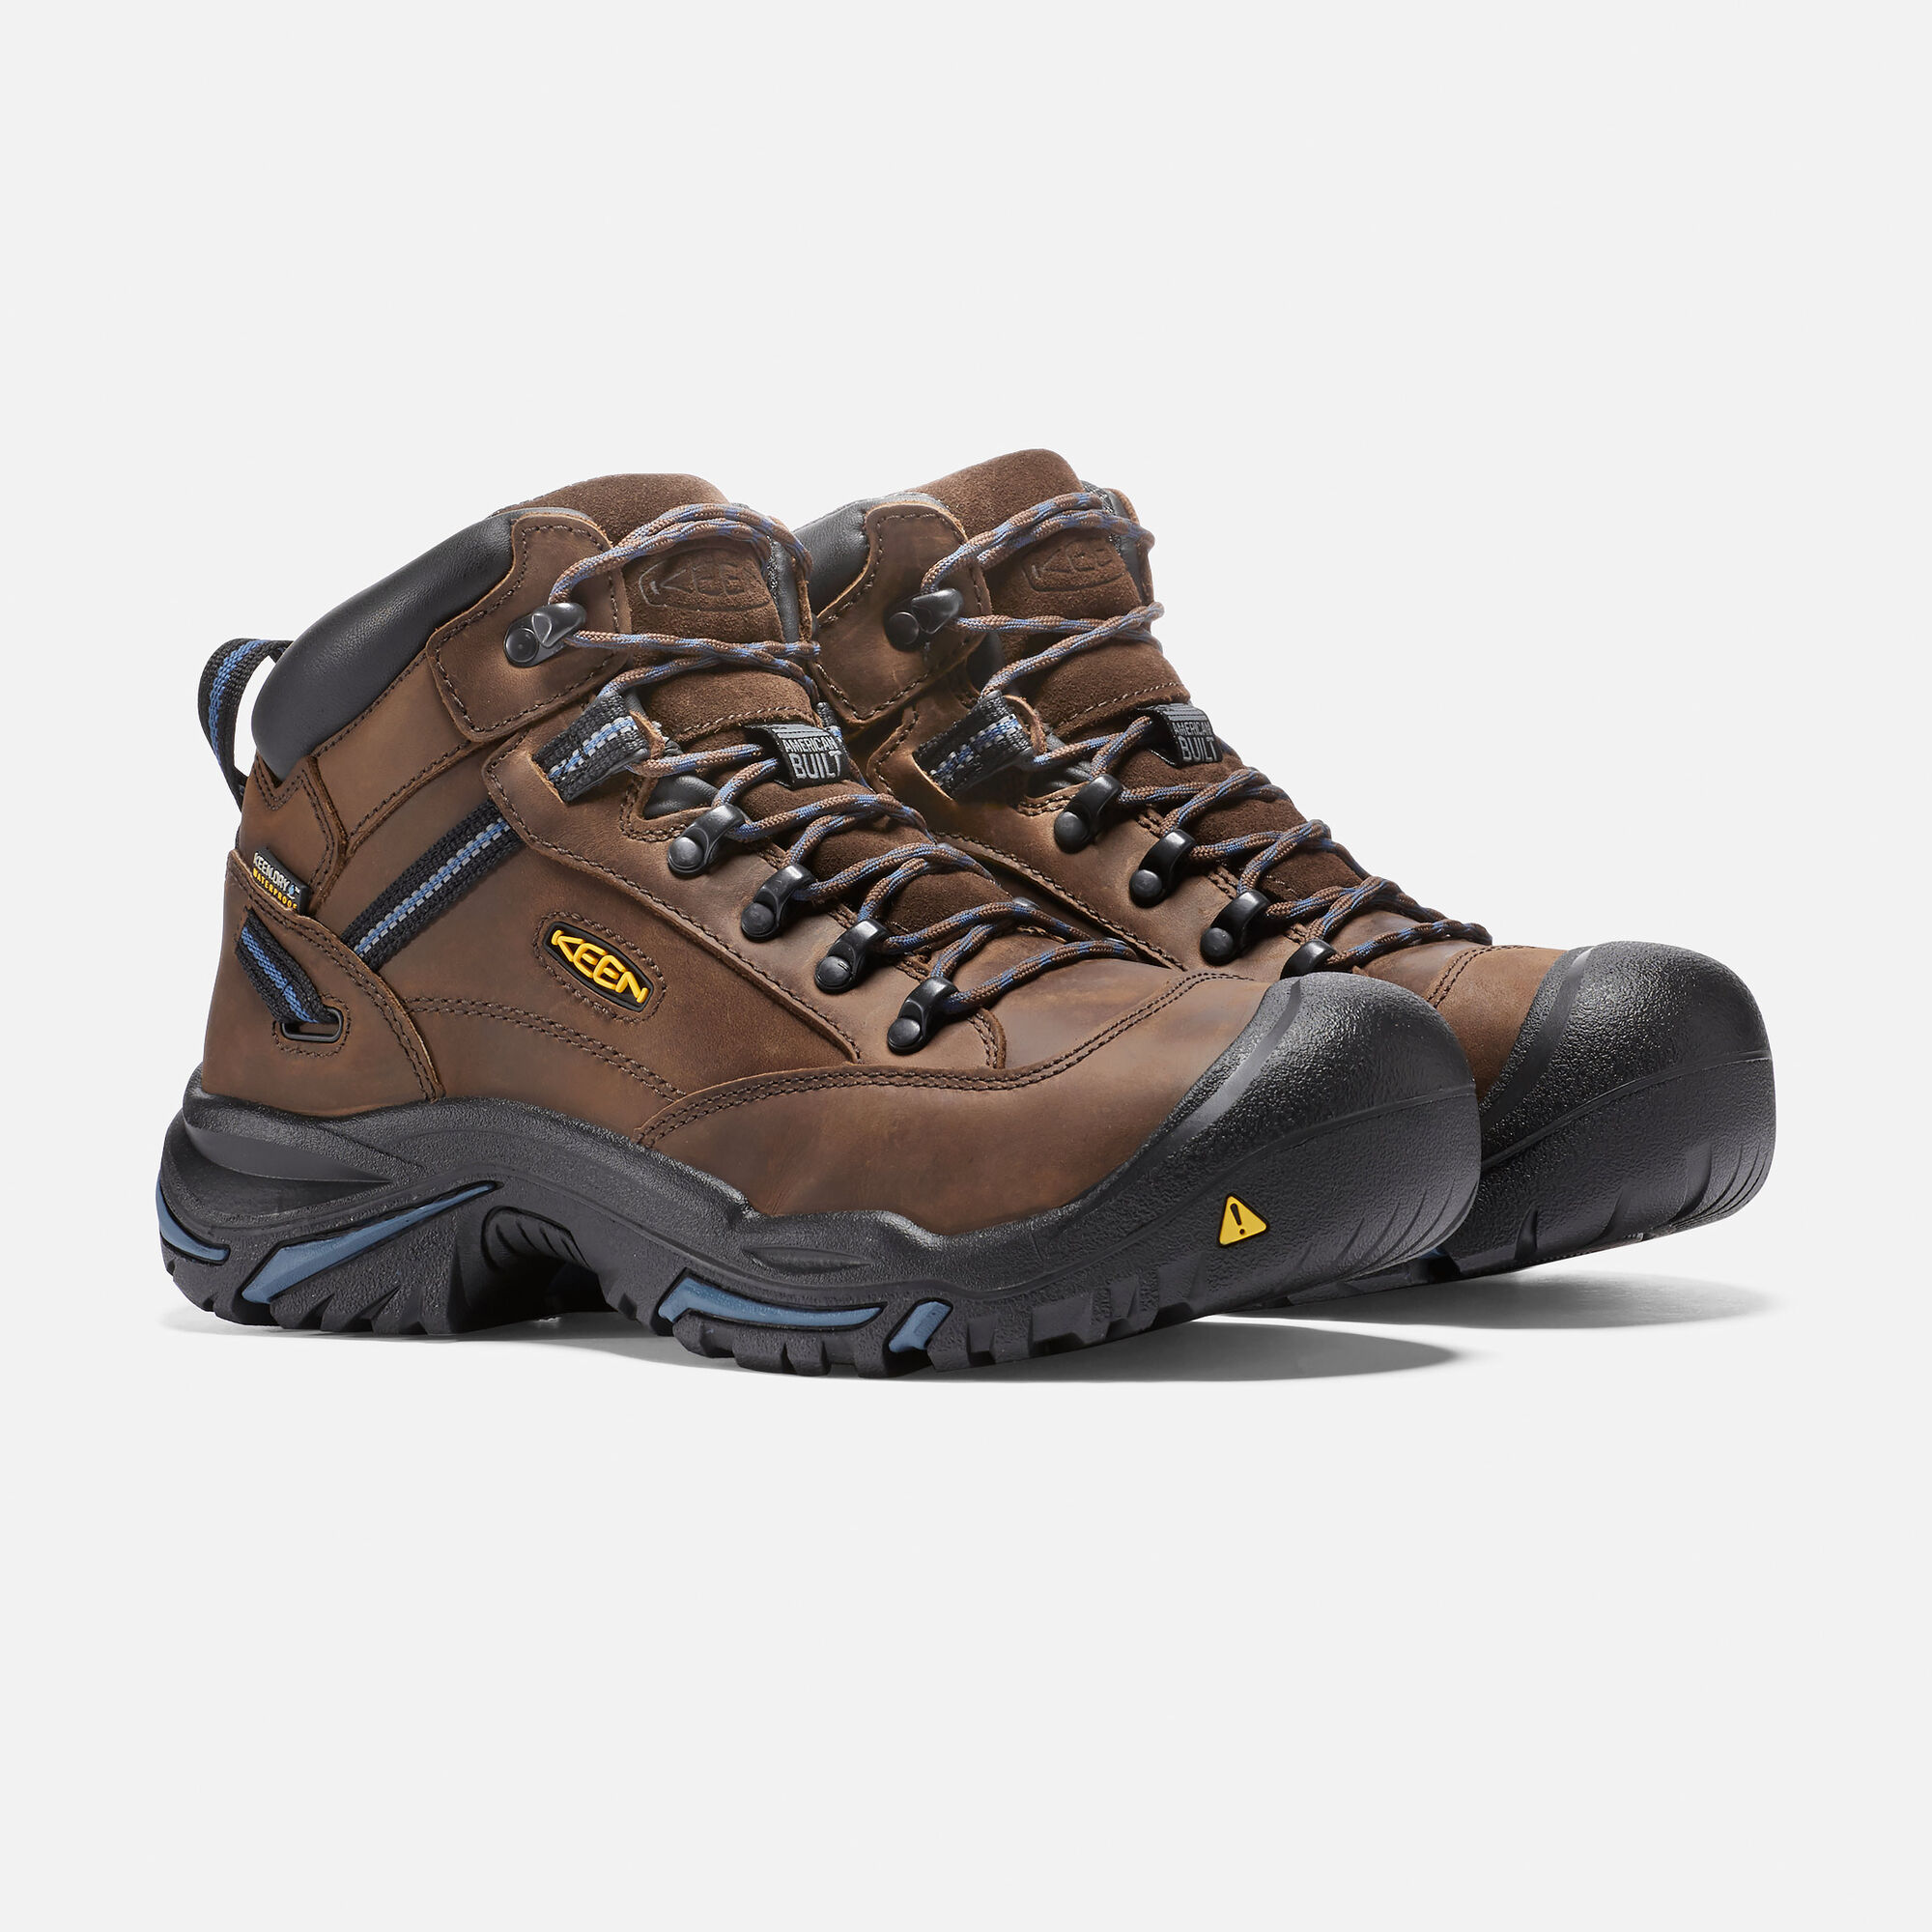 439c2827e34 Men's Braddock Mid AL Work Boots - Waterproof, Steel Toe Boots ...